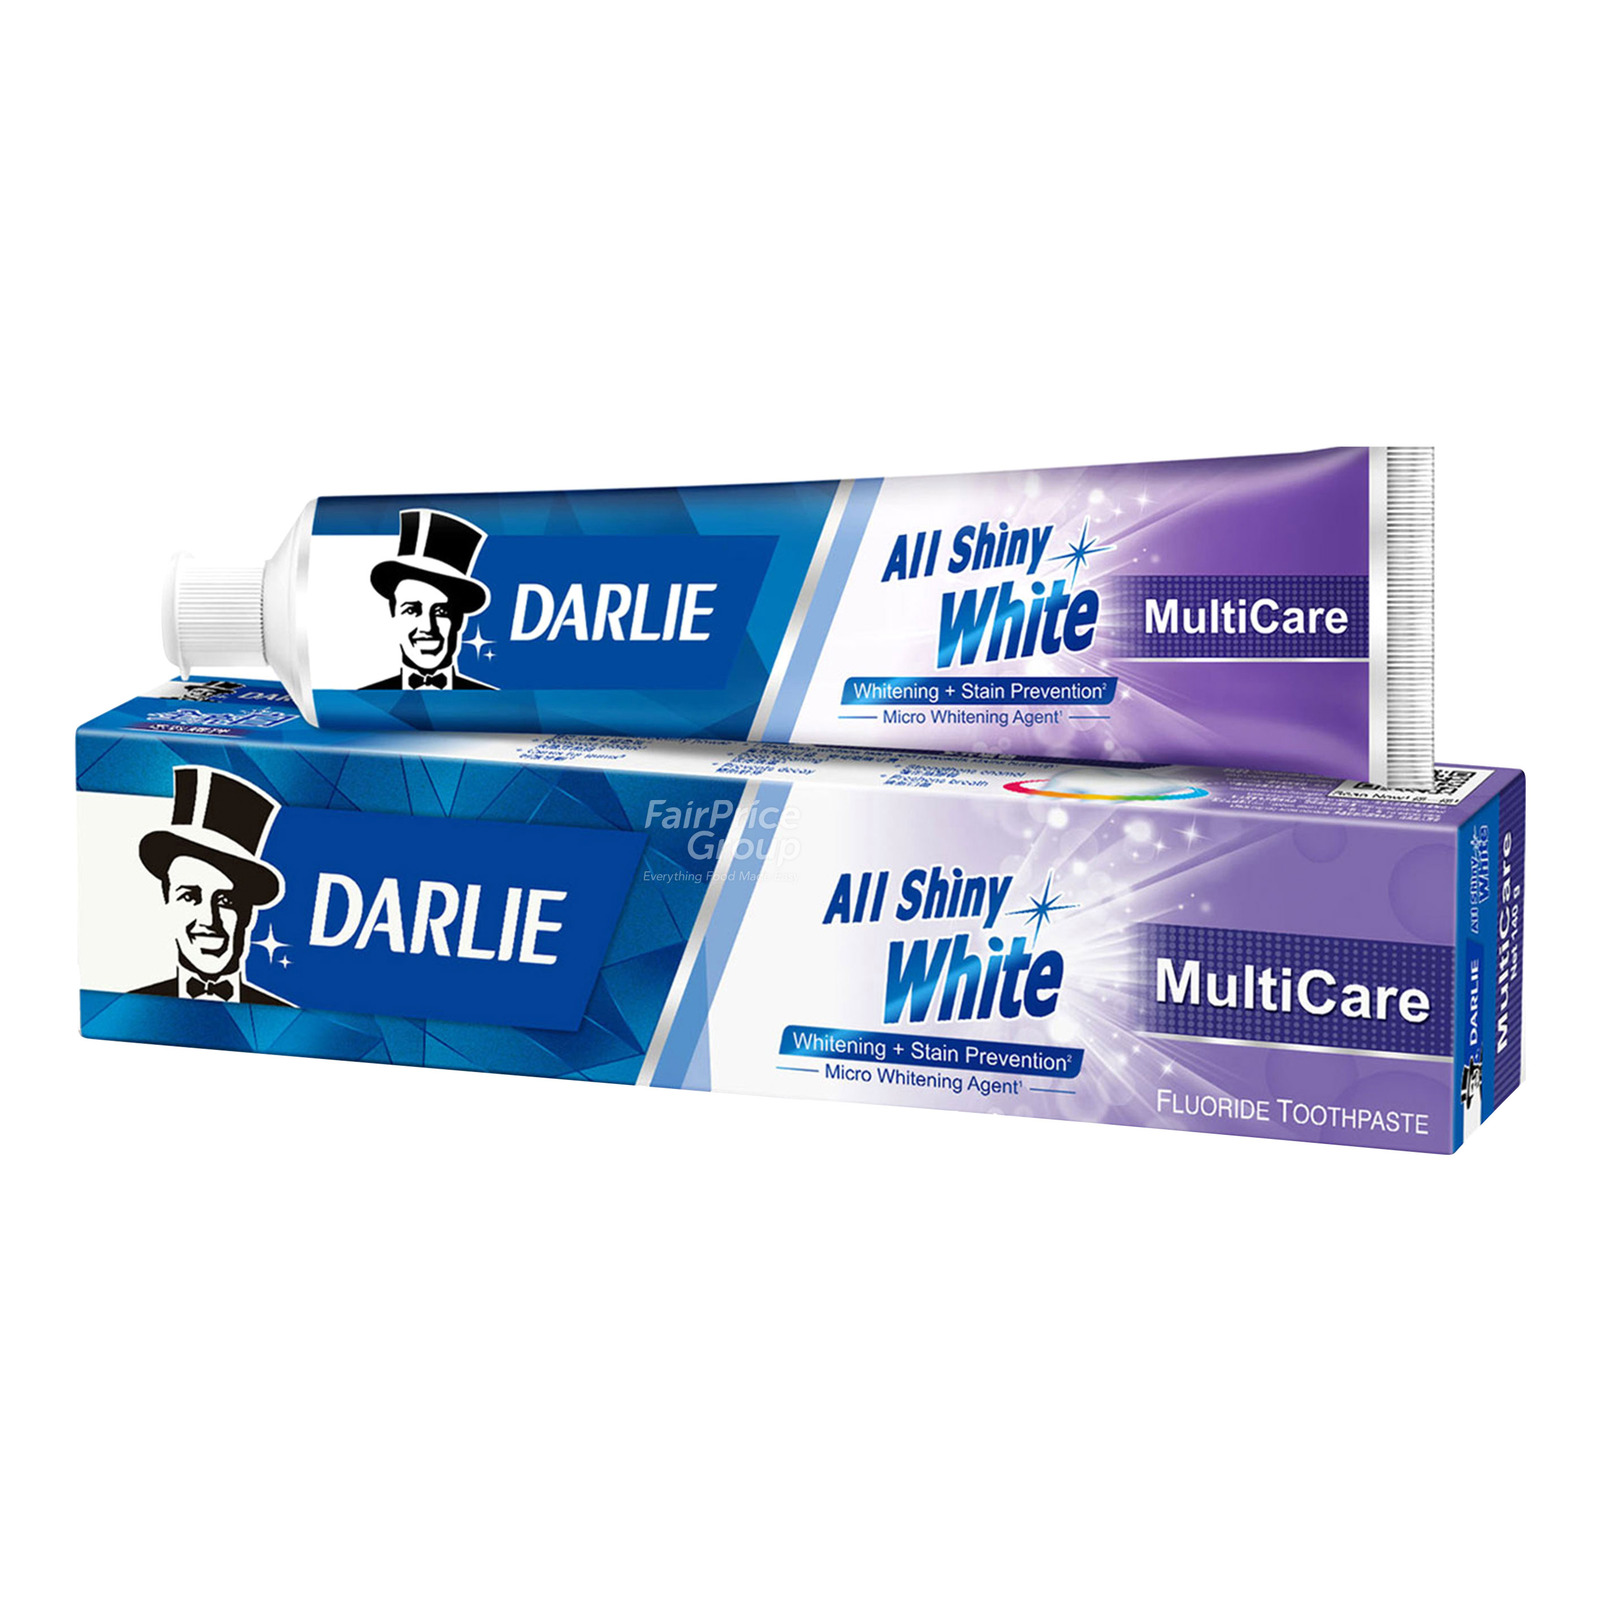 Darlie All Shiny White Toothpaste - Multi-Care